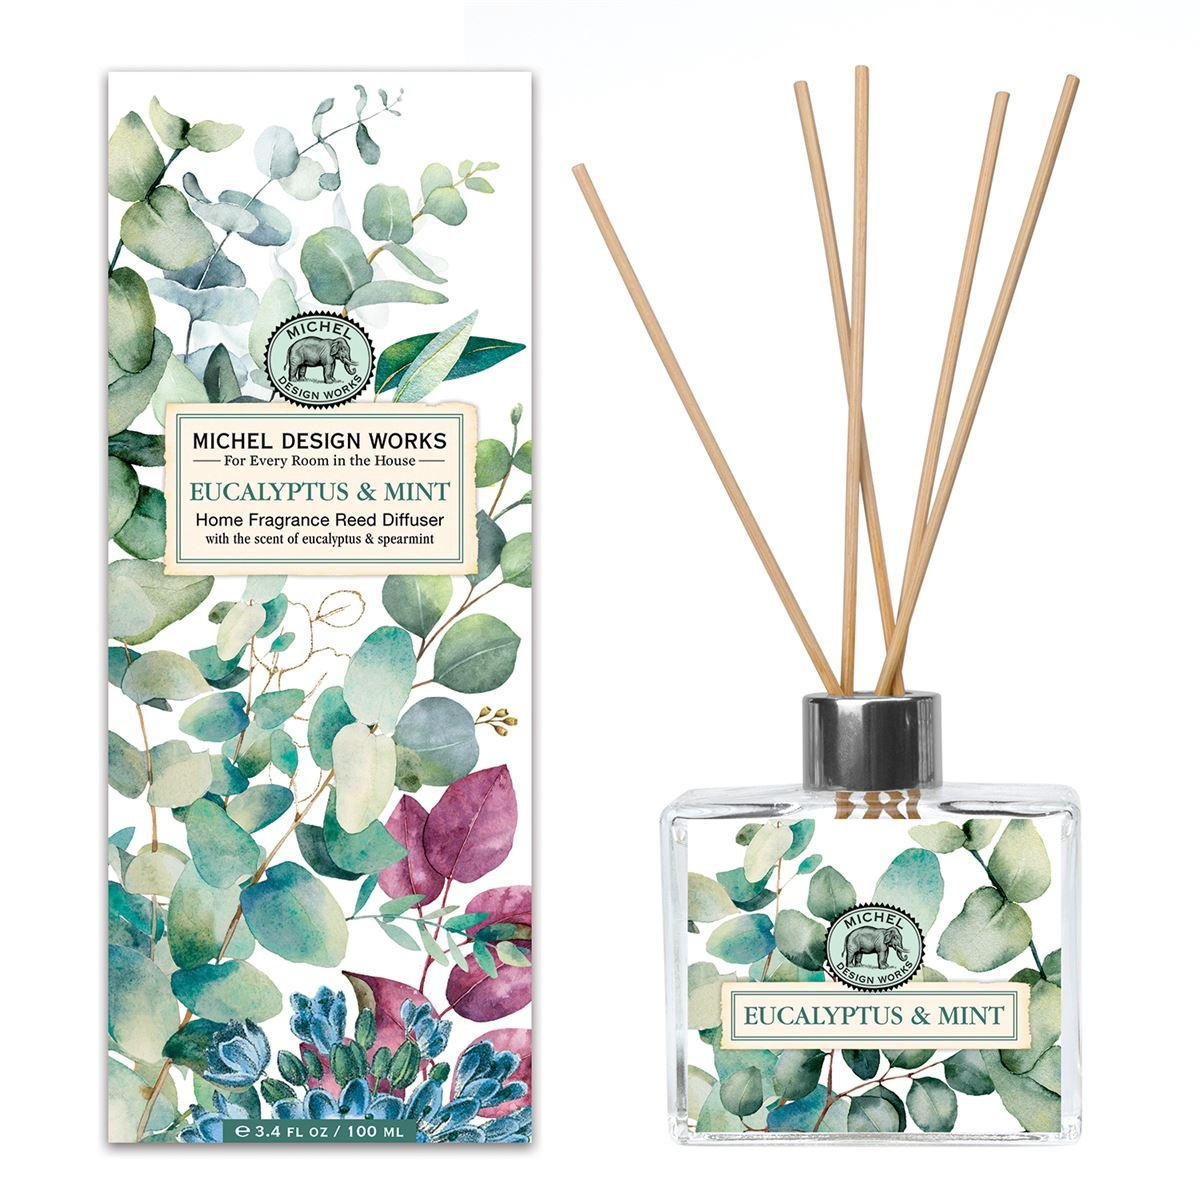 Eucalyptus & Mint Home Fragrance Reed Diffuser